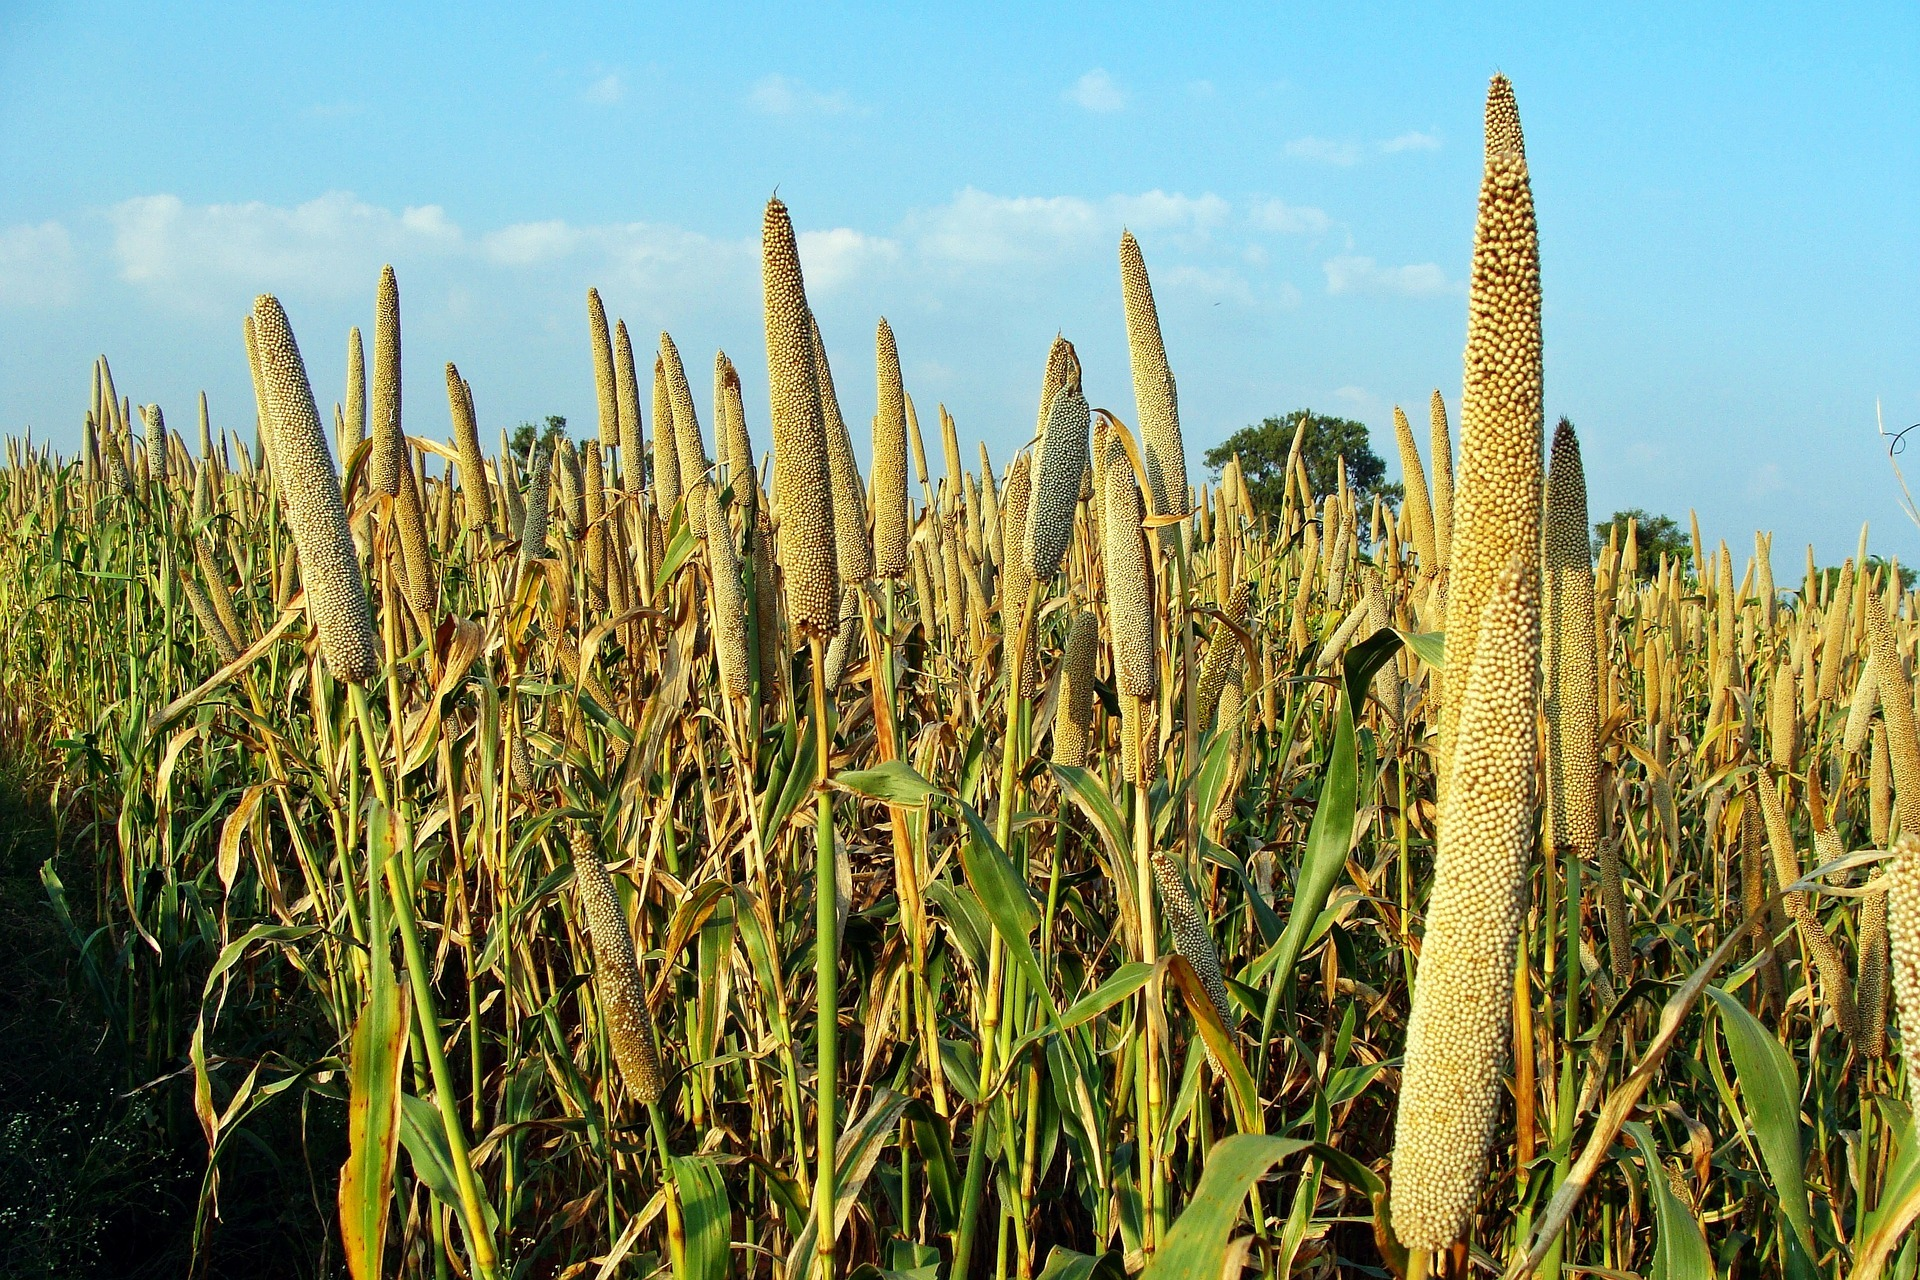 A millet field. Photo credit: Pixabay